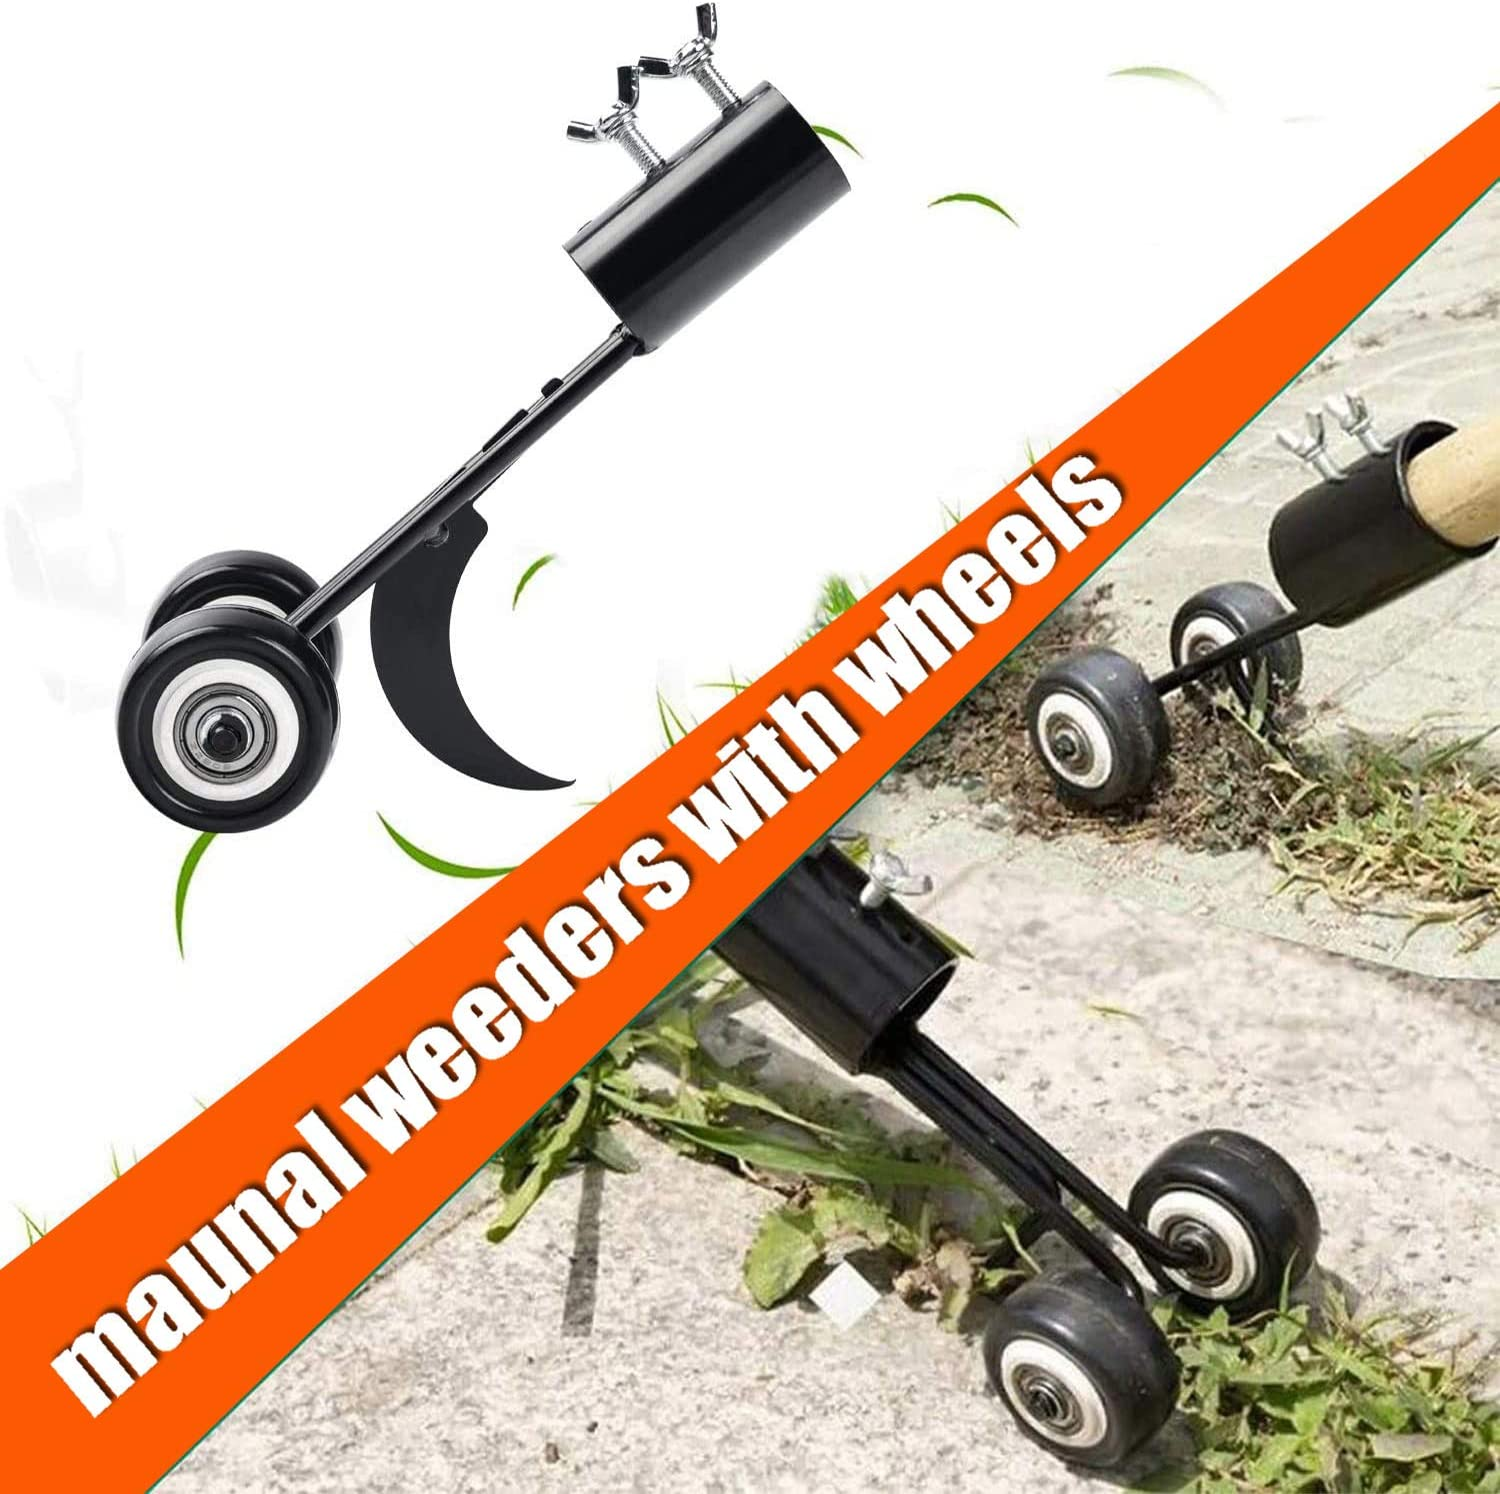 VANCON Weeds Snatcher Crack and Crevice Weeding Tool, Sidewalk Weed Puller Stand Up, Weed Crack Tool with Wheels, Cleaning Garden Tools for Patio Backyard (Hook)